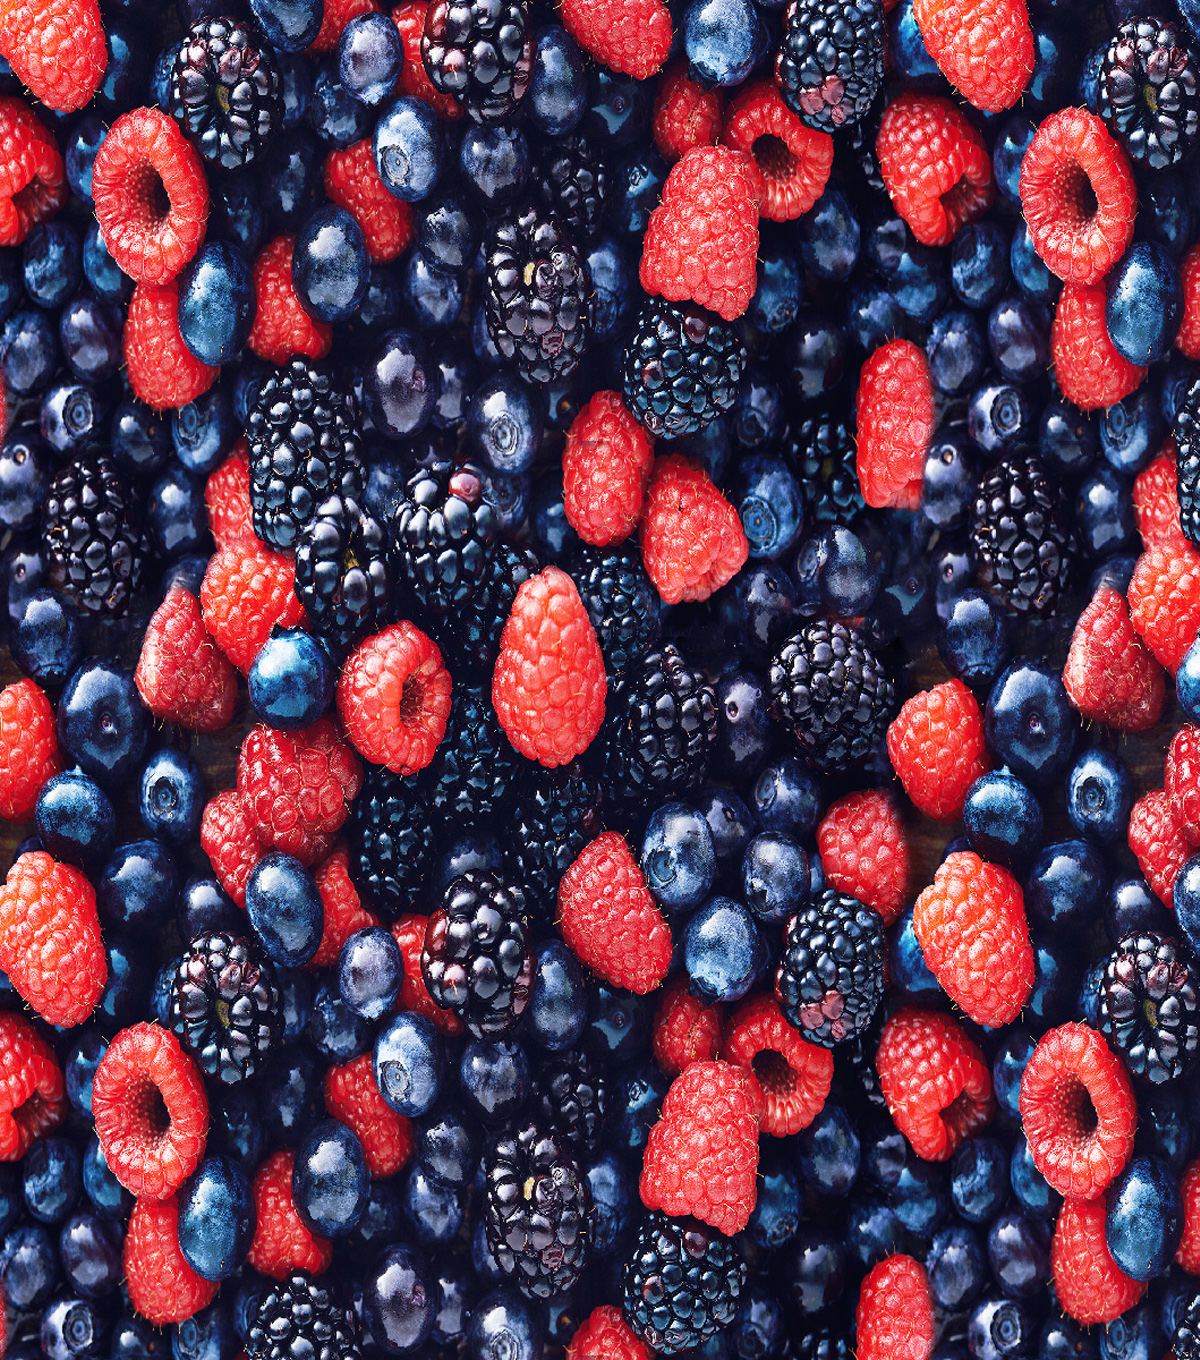 Novelty Cotton Fabric -Photoreal Mixed Berries